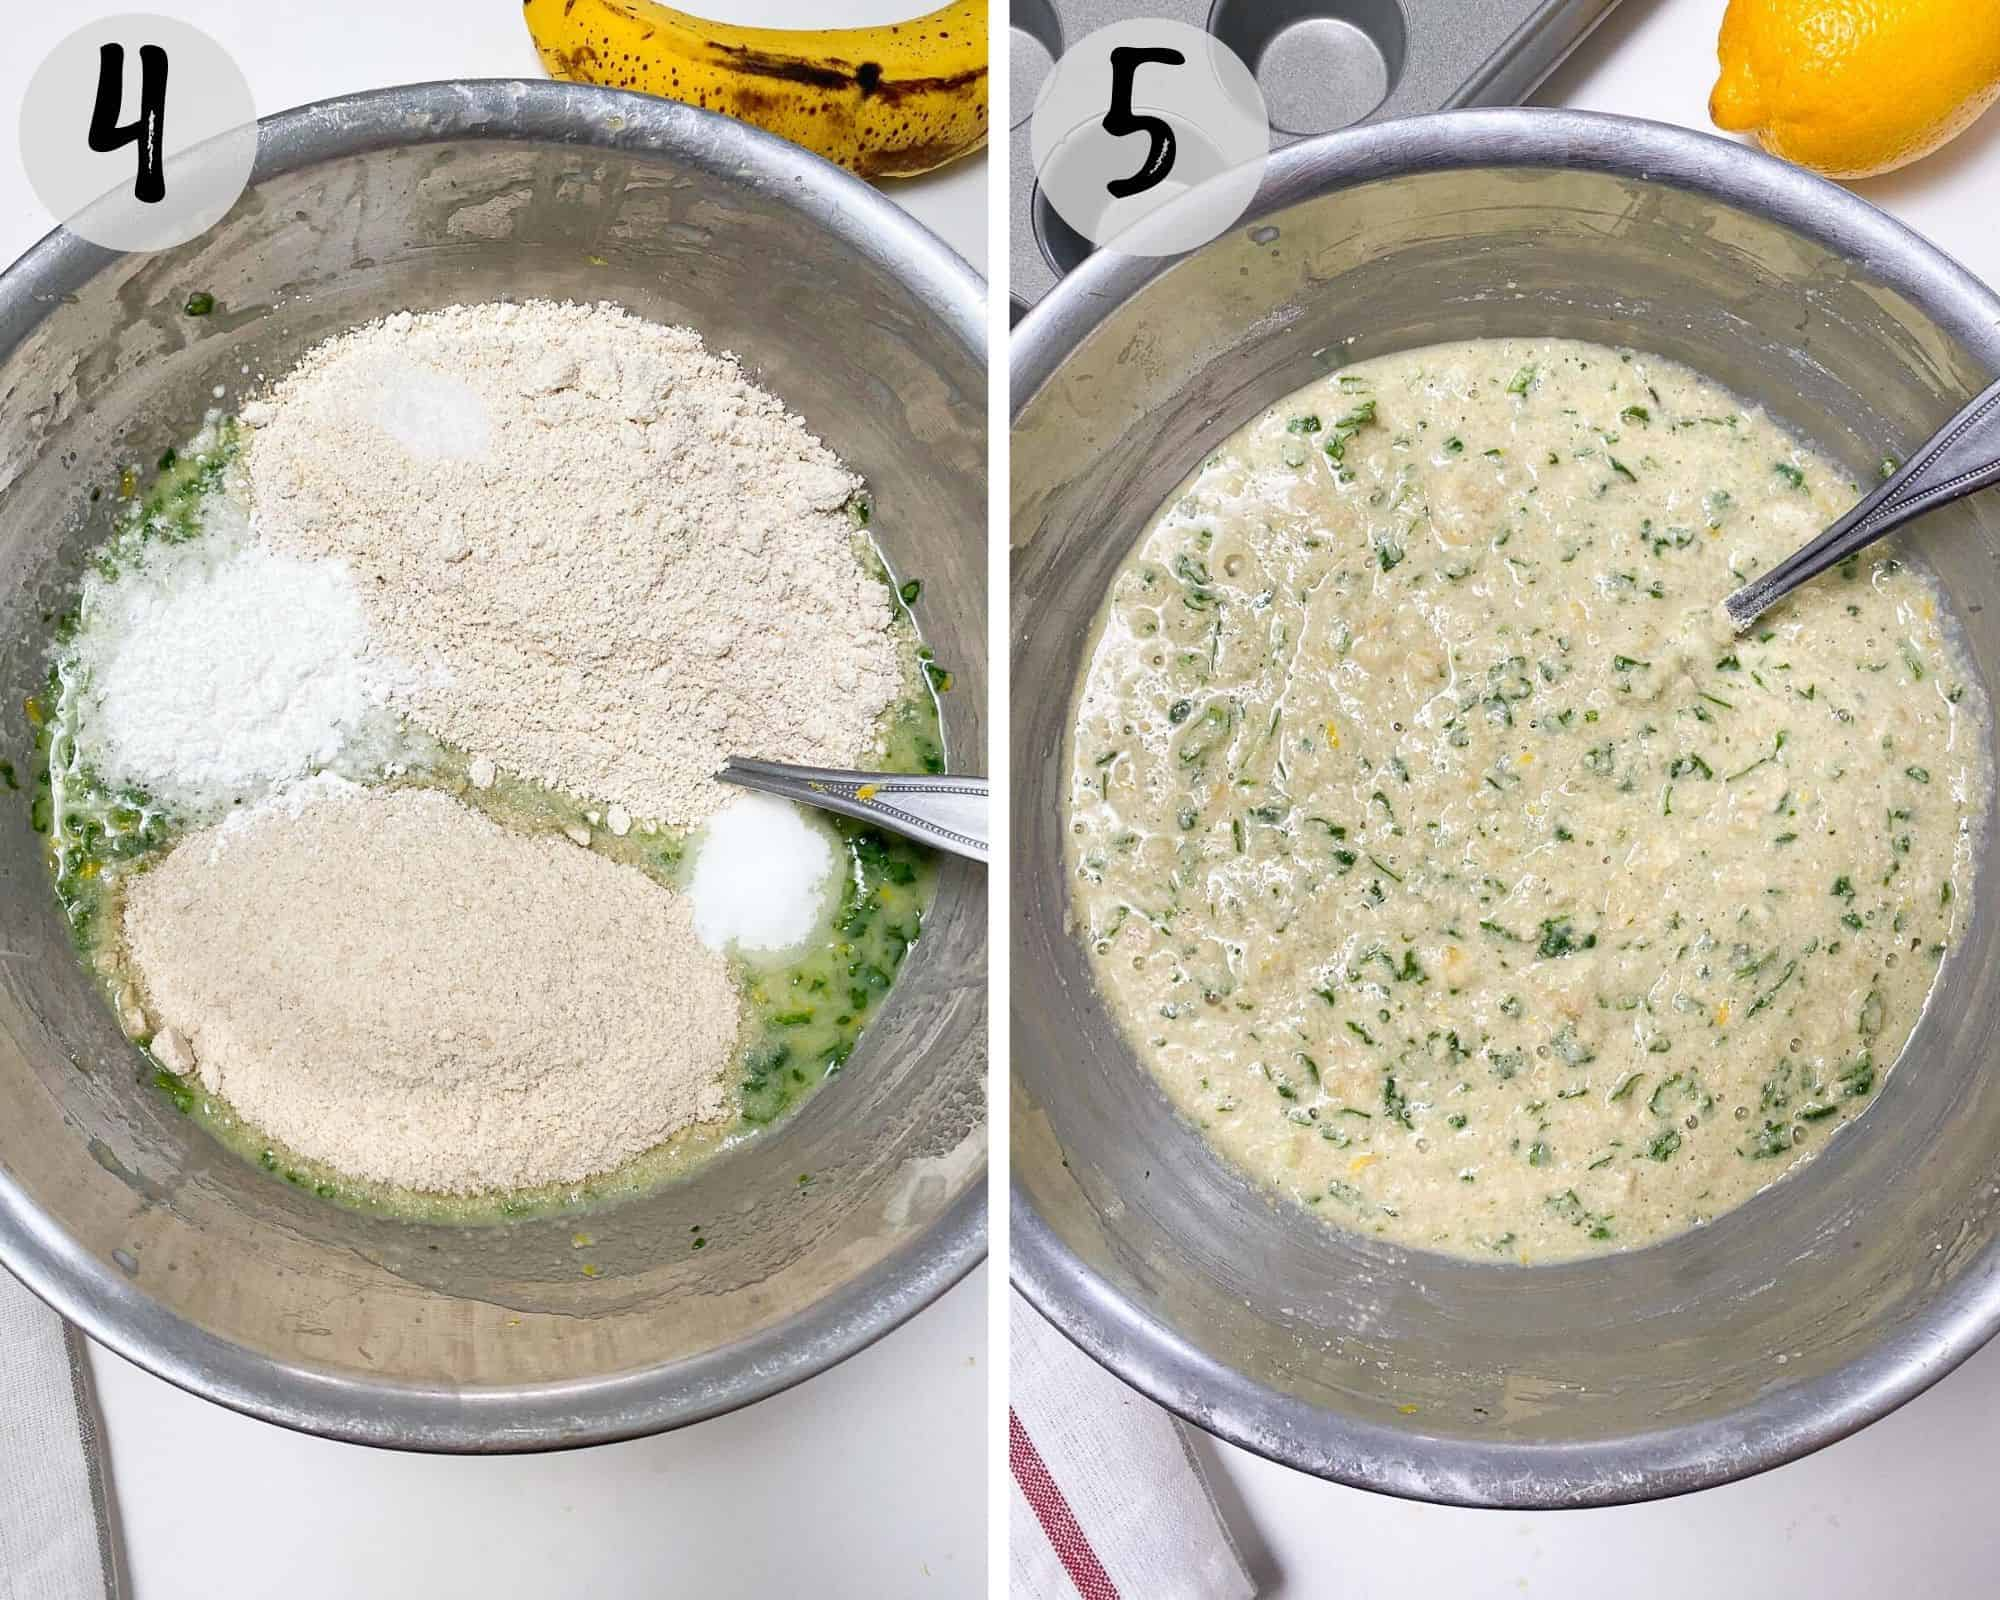 mixing bowl filled with dry and wet ingredients mixed to make batter